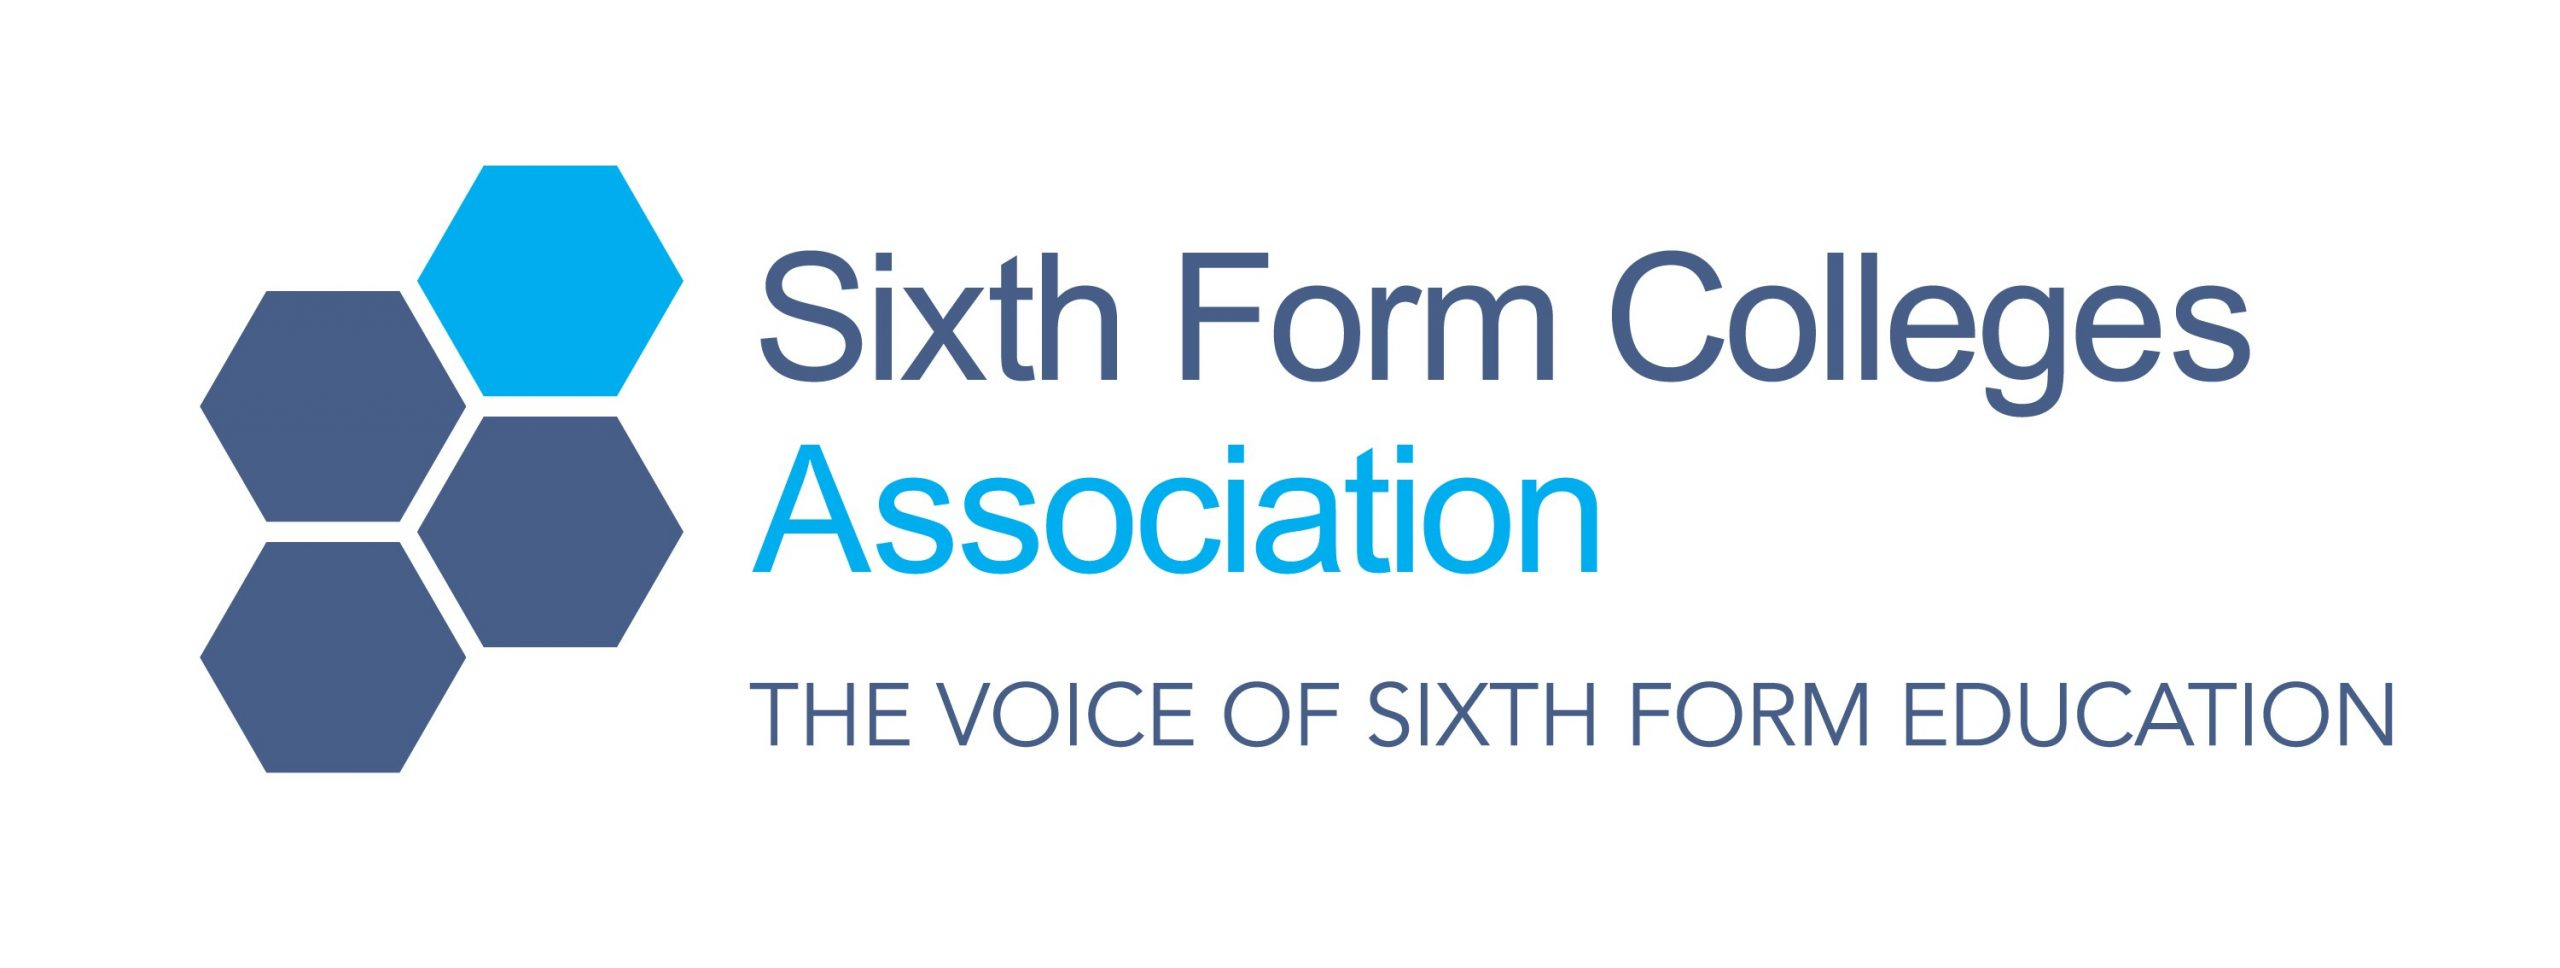 Sixth Form Colleges Association